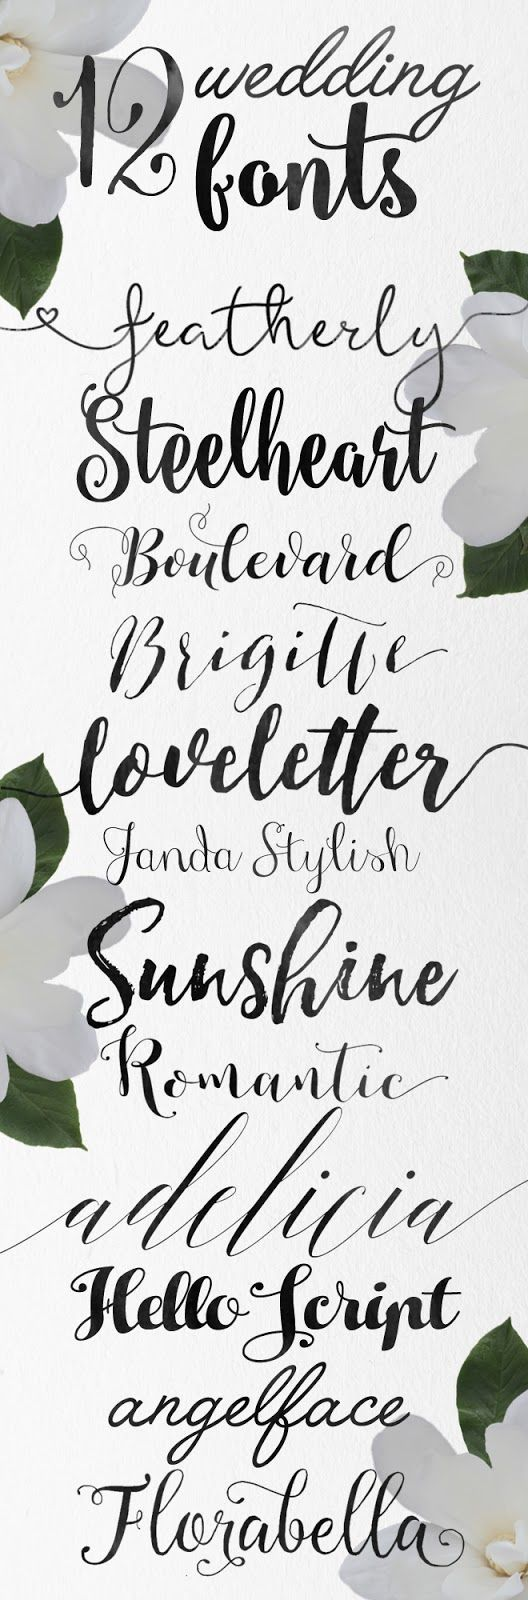 - Skyla Design -: Calligraphy wedding fonts - some free